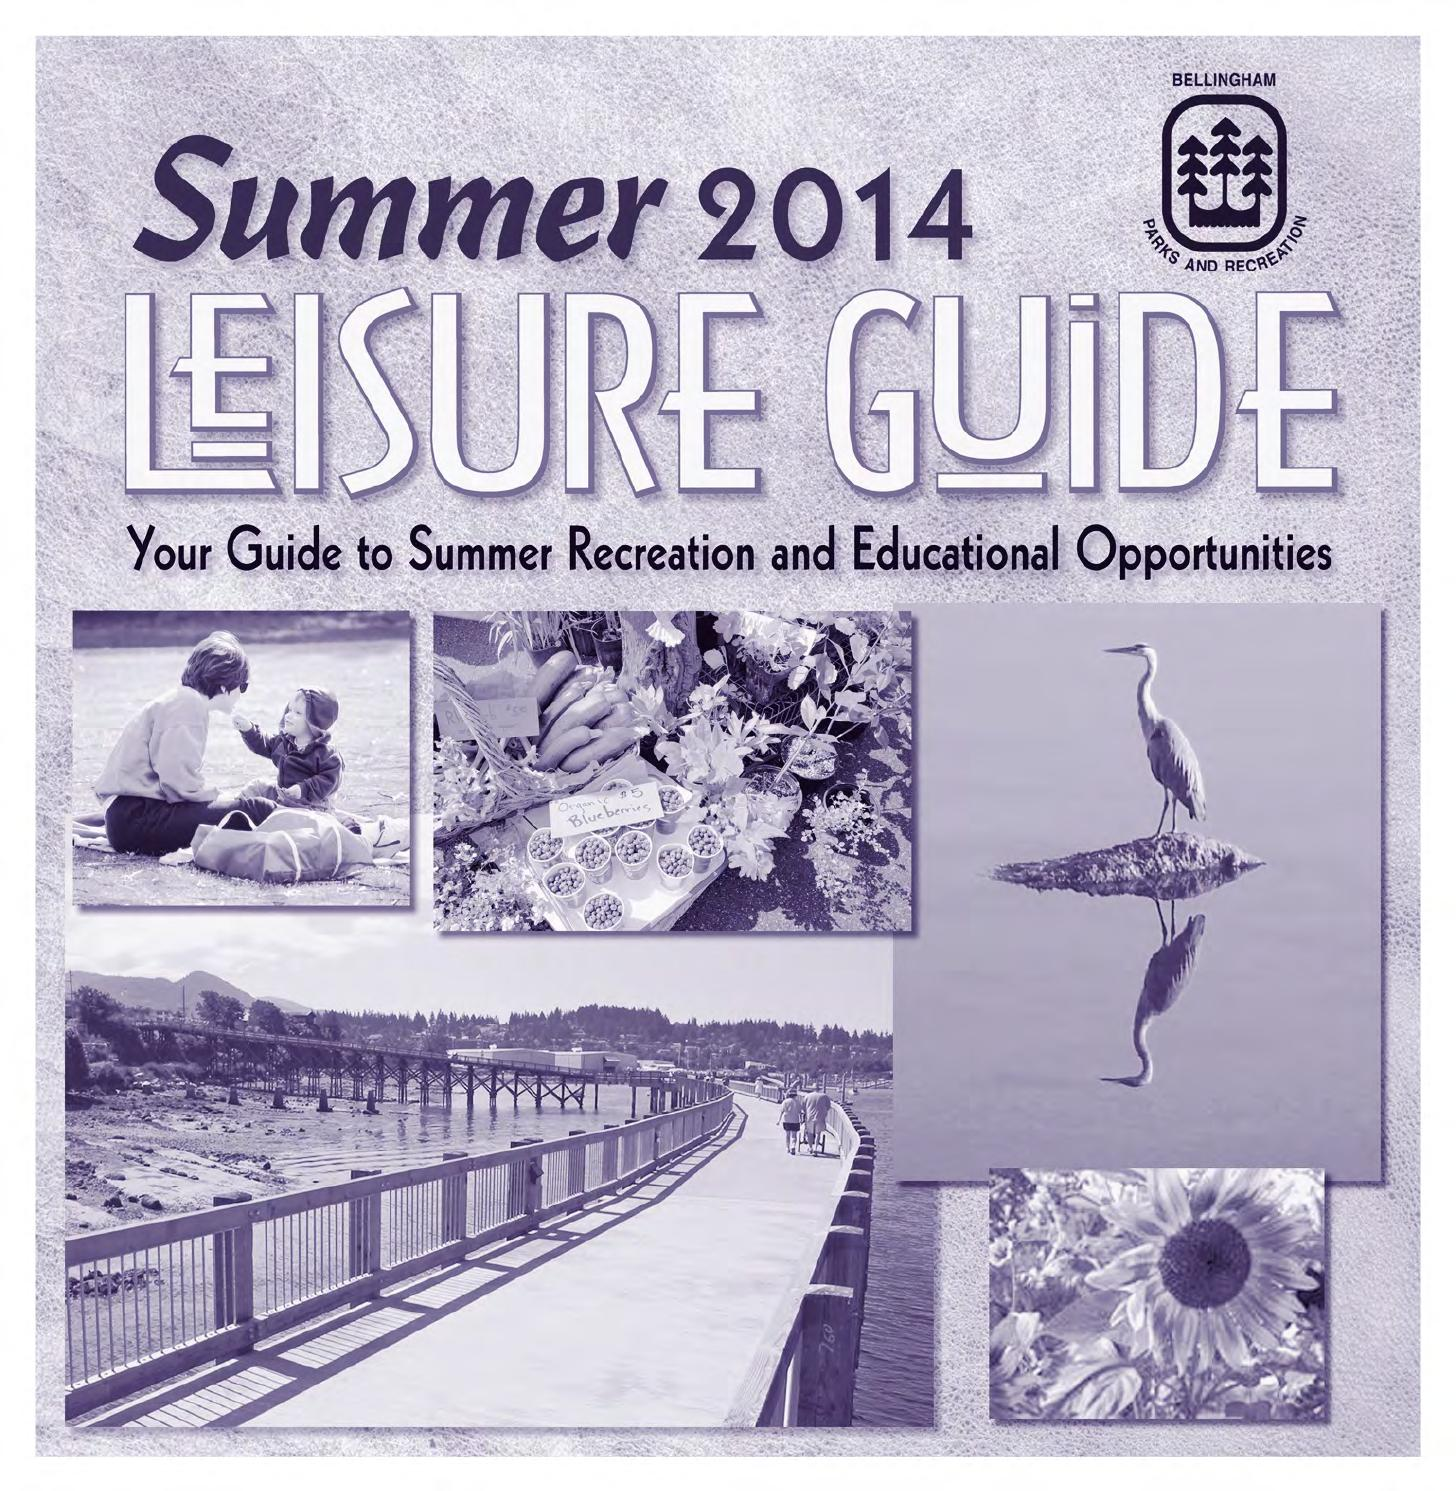 bellingham parks and recreation leisure guide